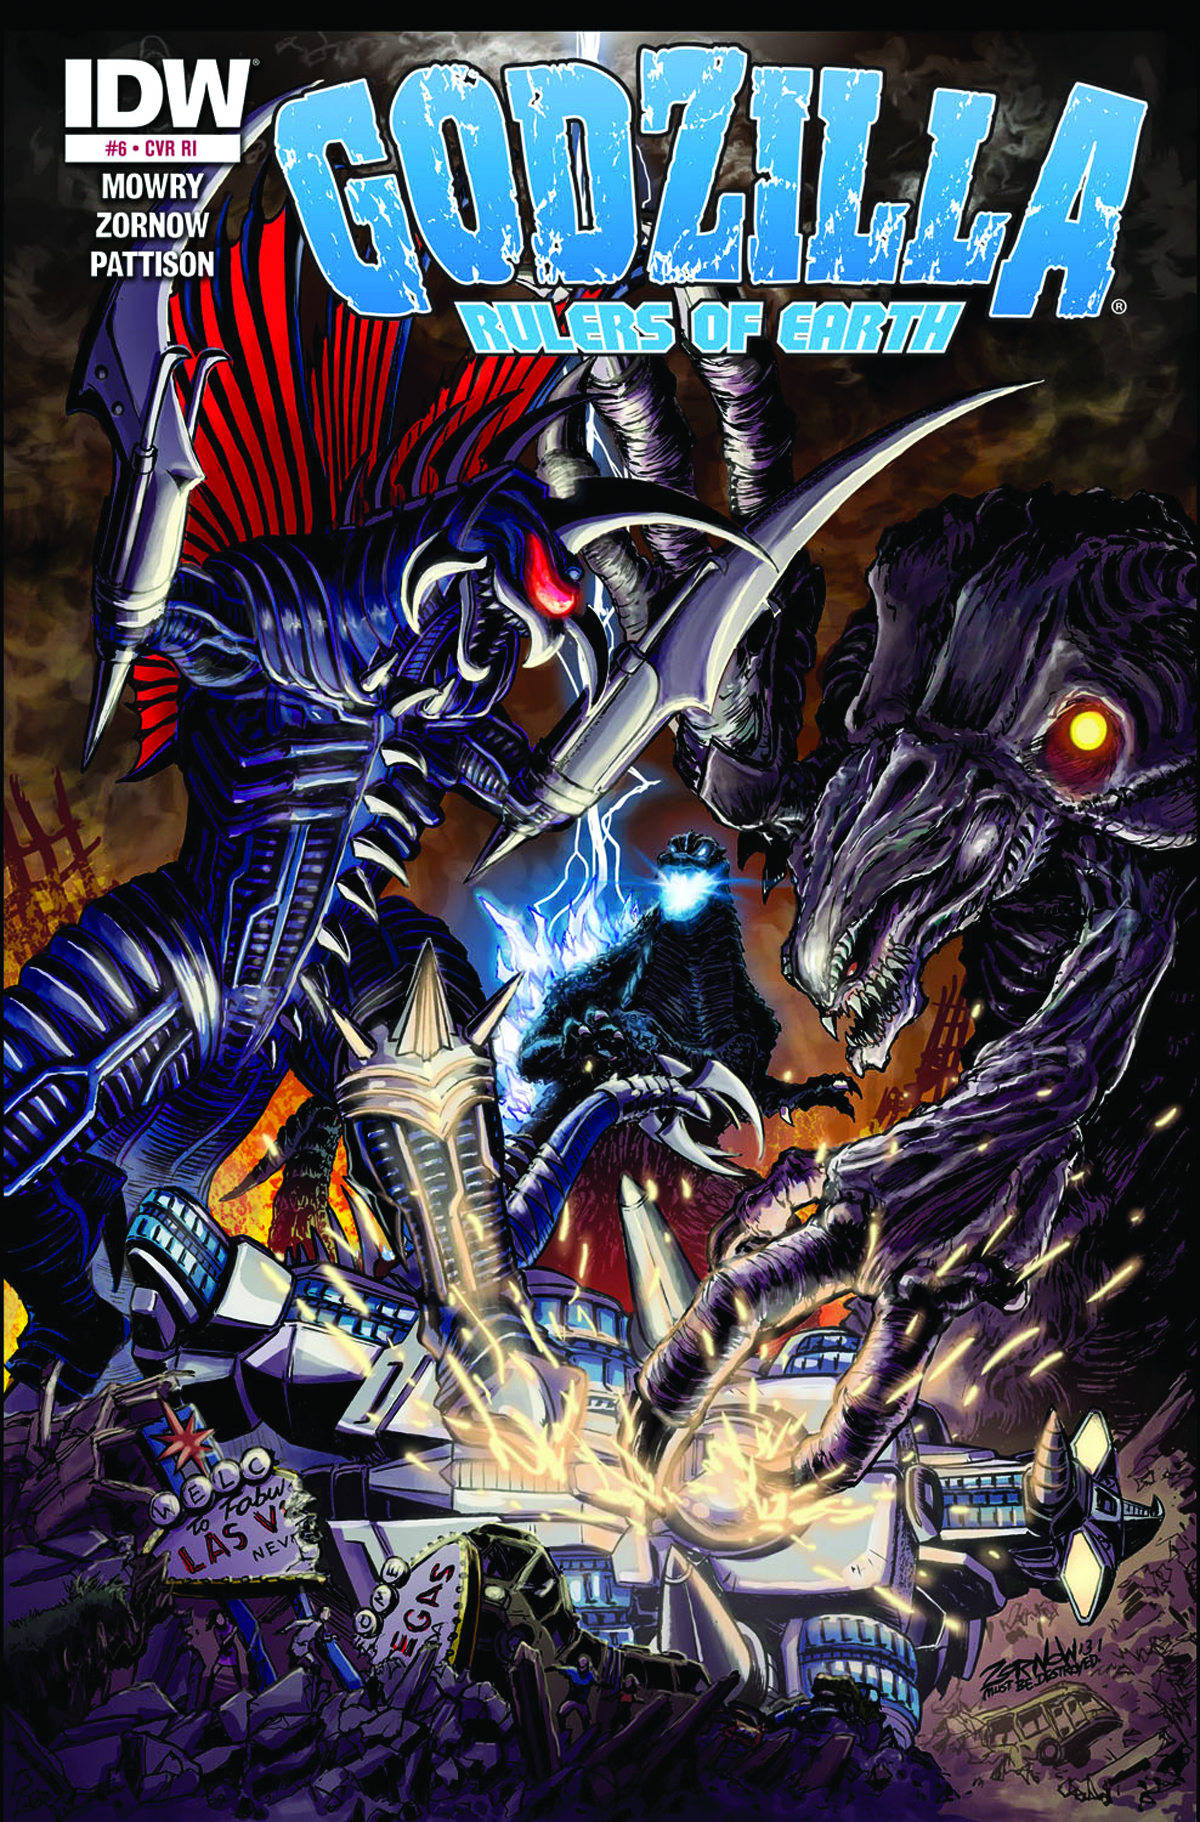 GODZILLA RULERS OF THE EARTH #6